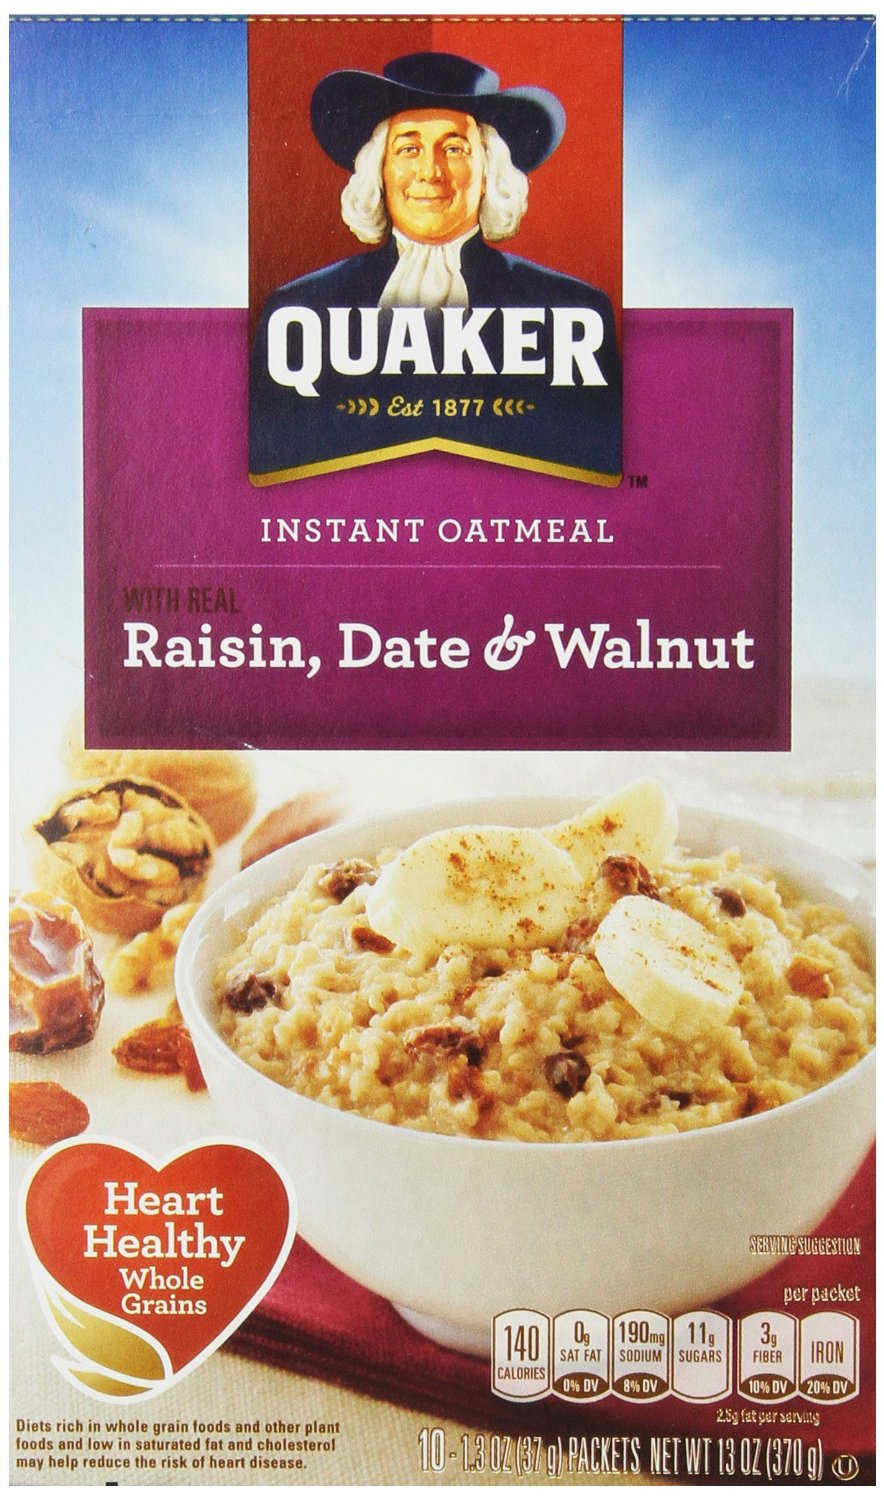 Quaker Instant Oatmeal Raisin, Date & Walnut, 1.3 oz., Packs, 10-Count Boxes (Pack of 4)